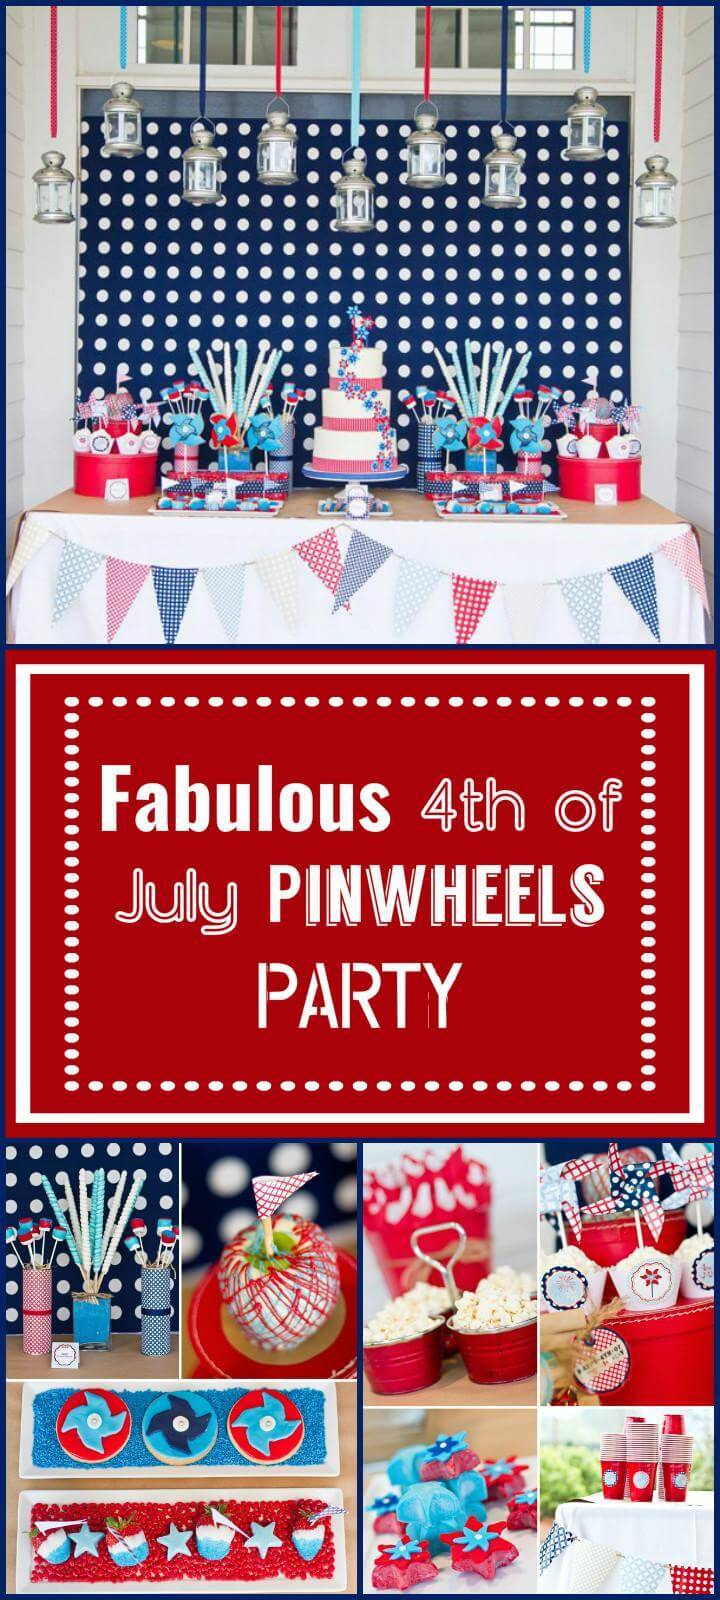 fab 4th of July pinwheel party